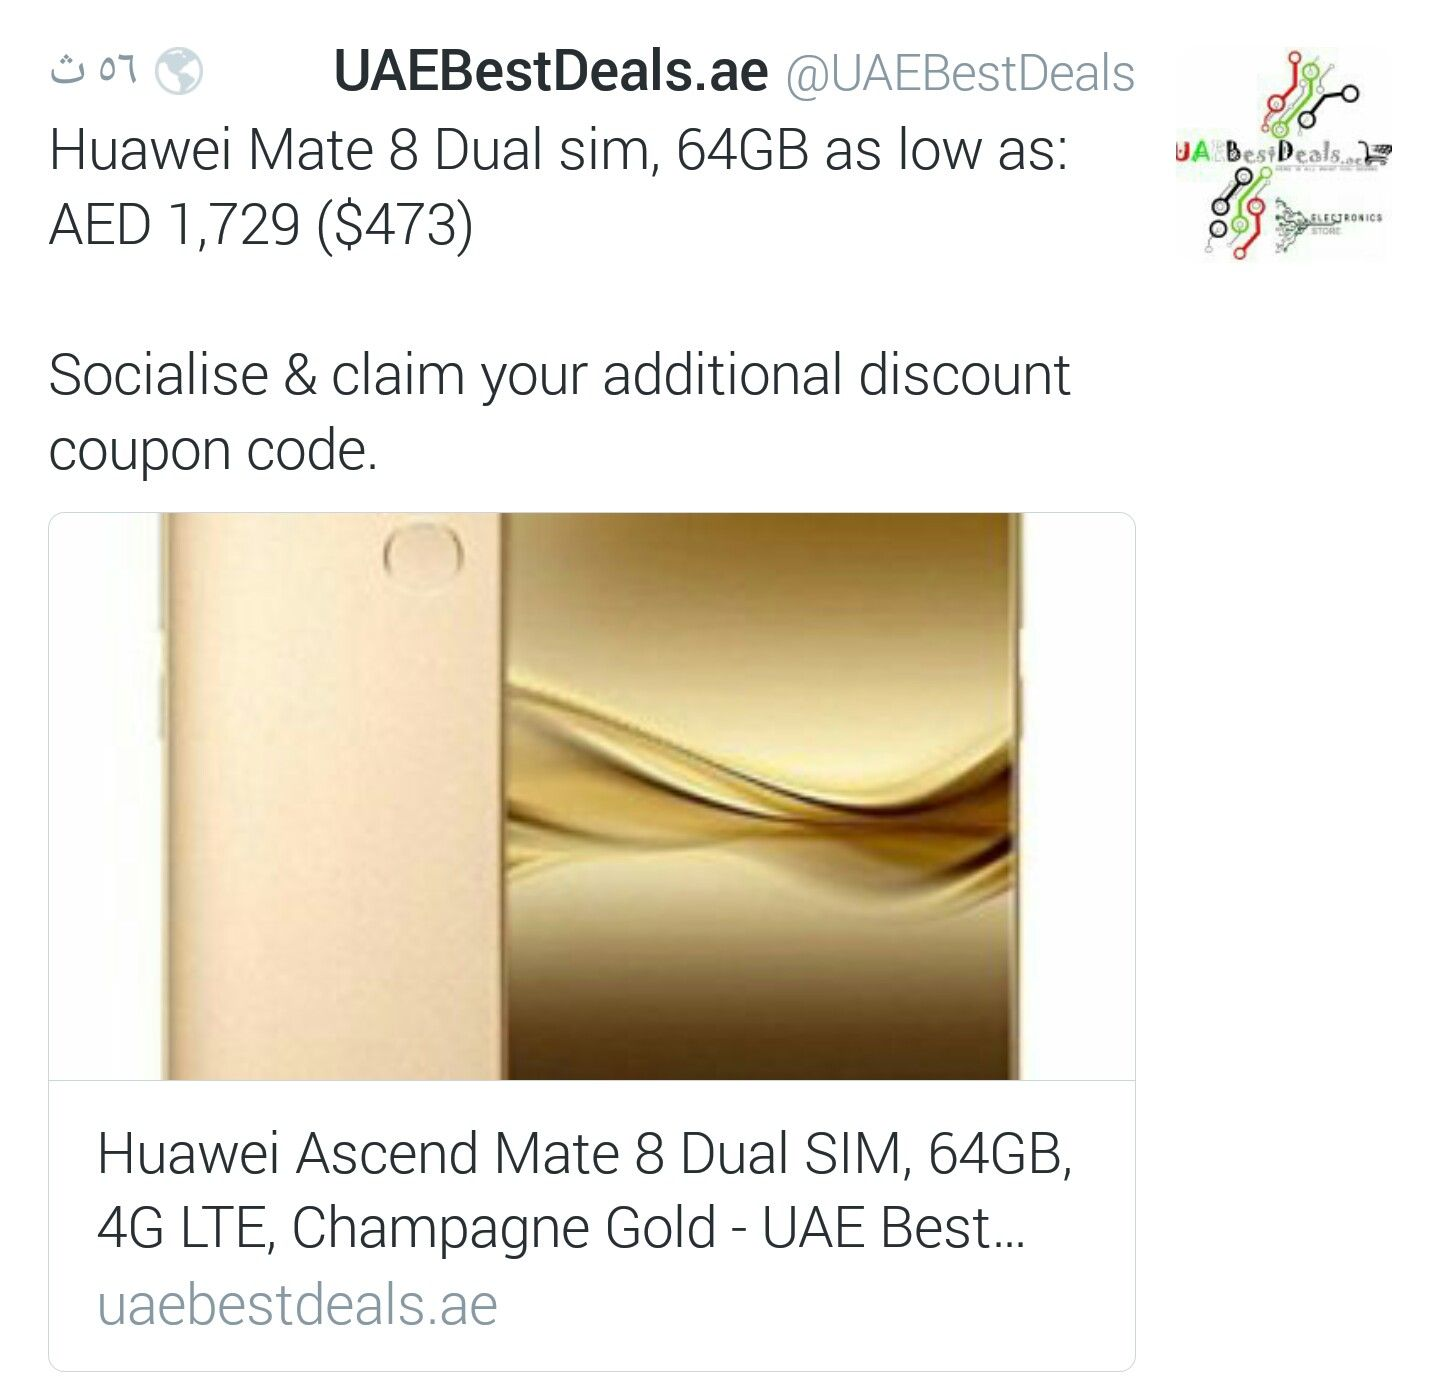 Pin By Uaebestdeals Ae On Uaebestdeals Ae S News Discount Codes